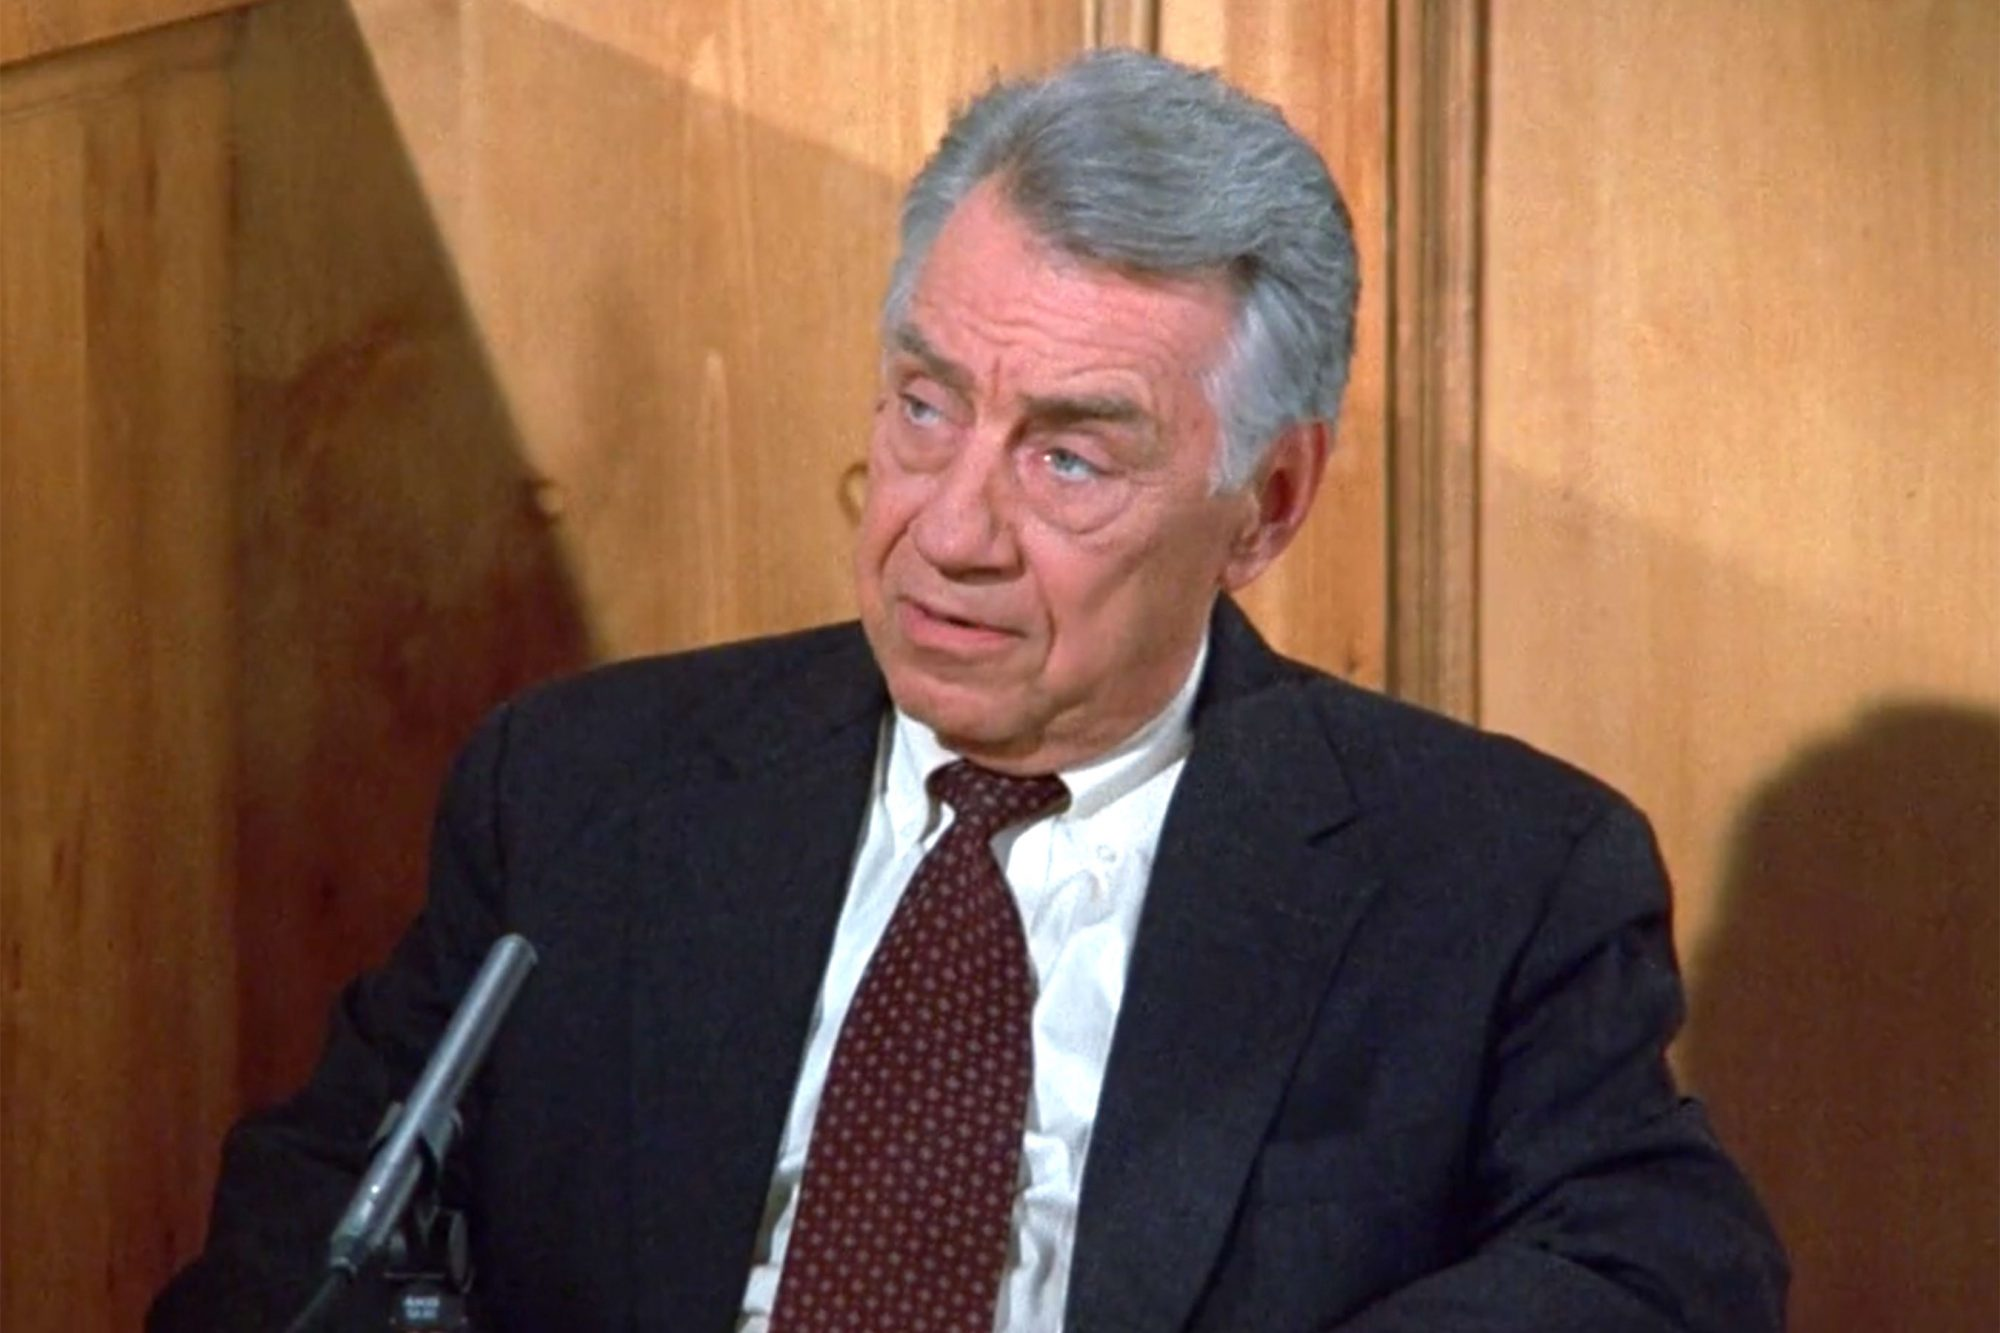 12. Philip Baker Hall as Joe Bookman